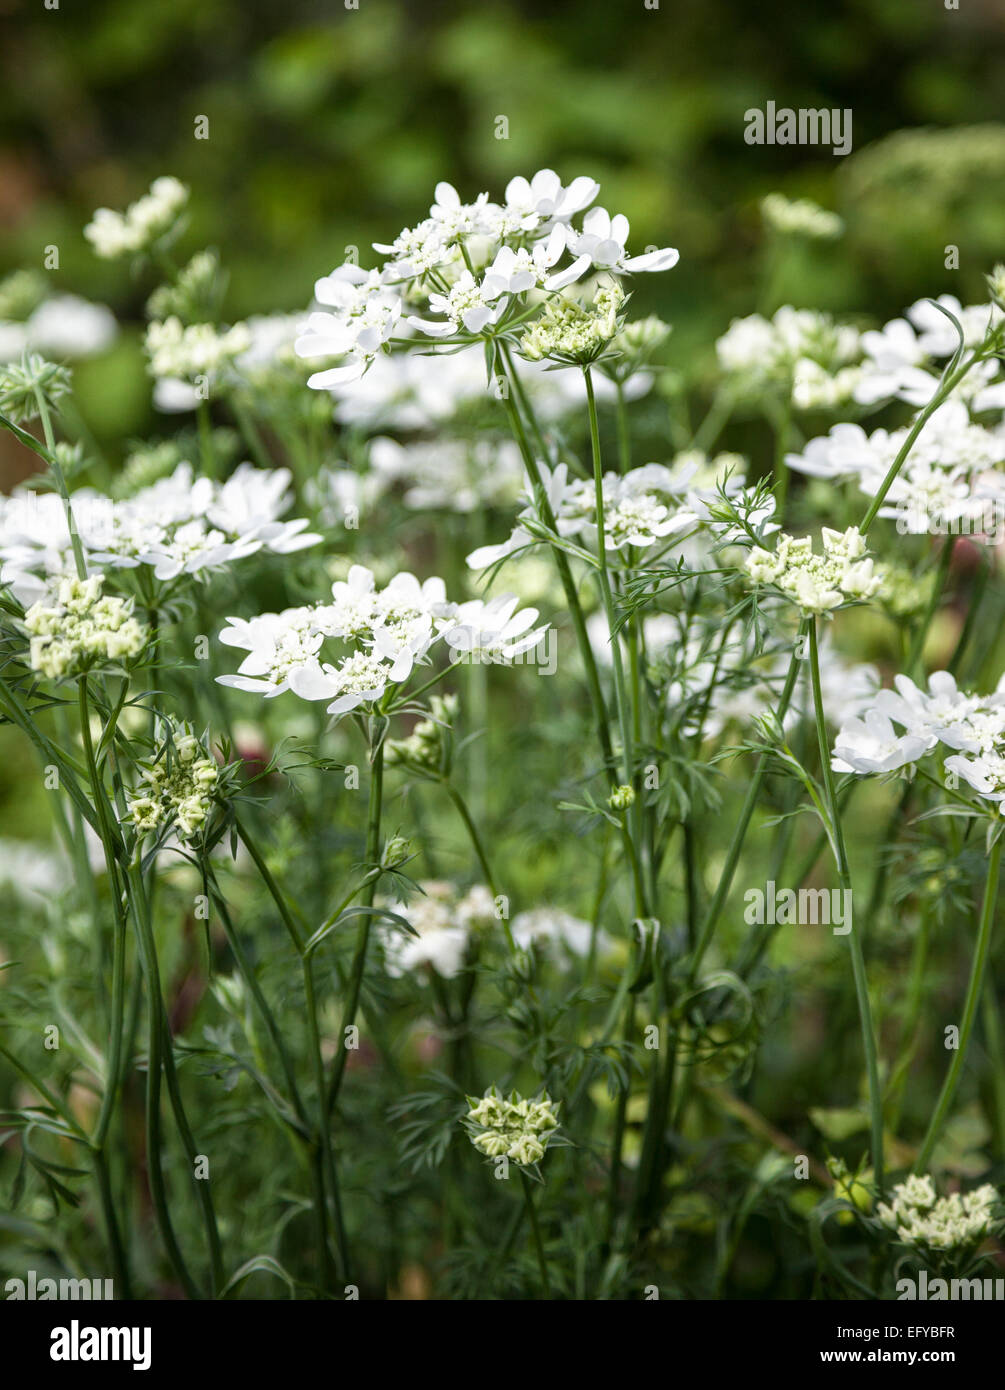 Orlaya grandiflora (white lace flower) Stock Photo